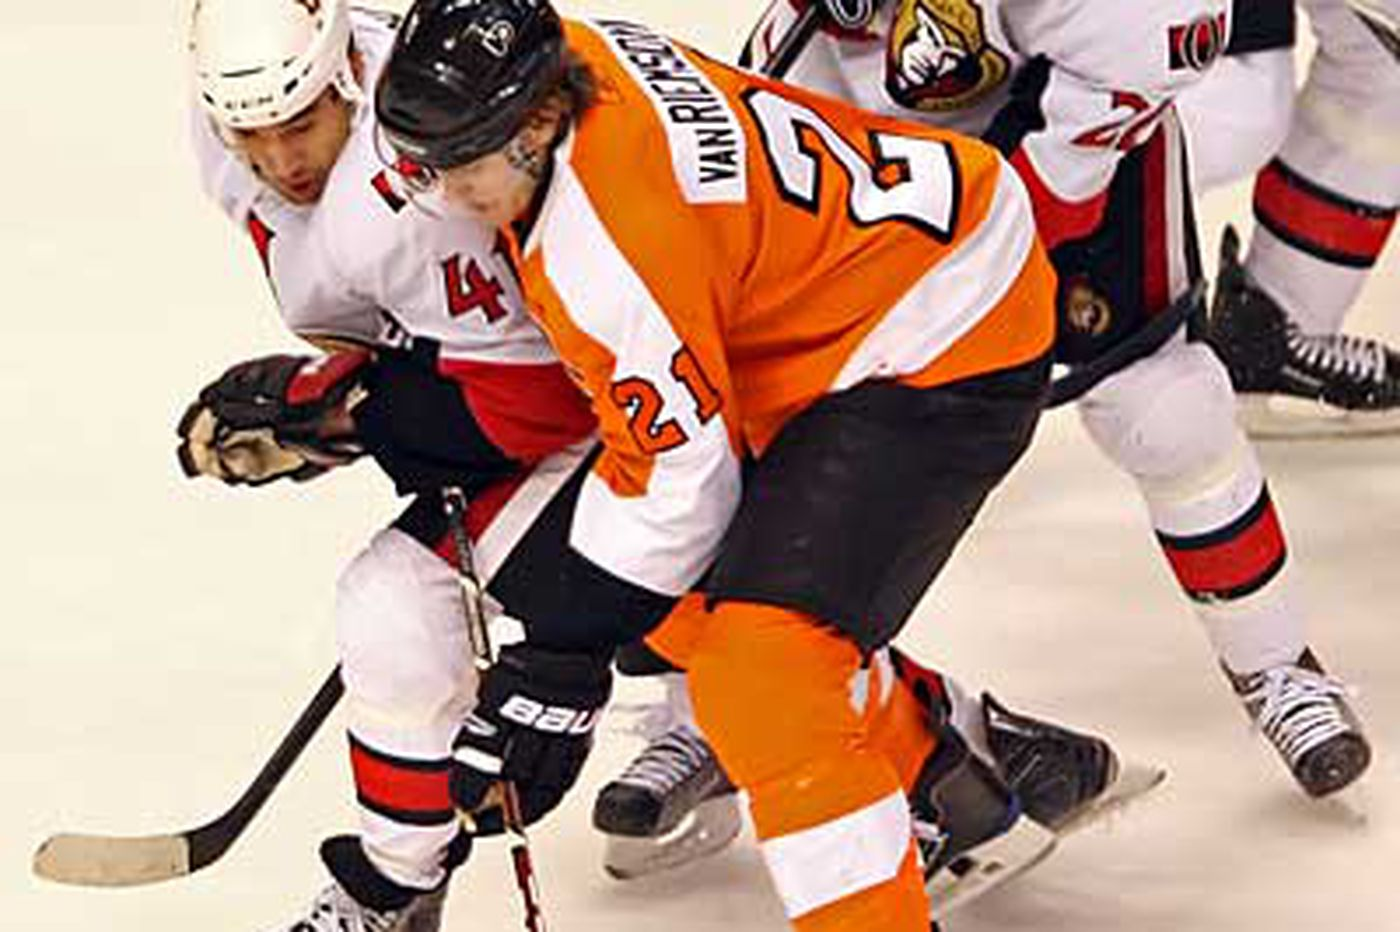 Flyers Notes: Homecoming for Flyers' van Riemsdyk